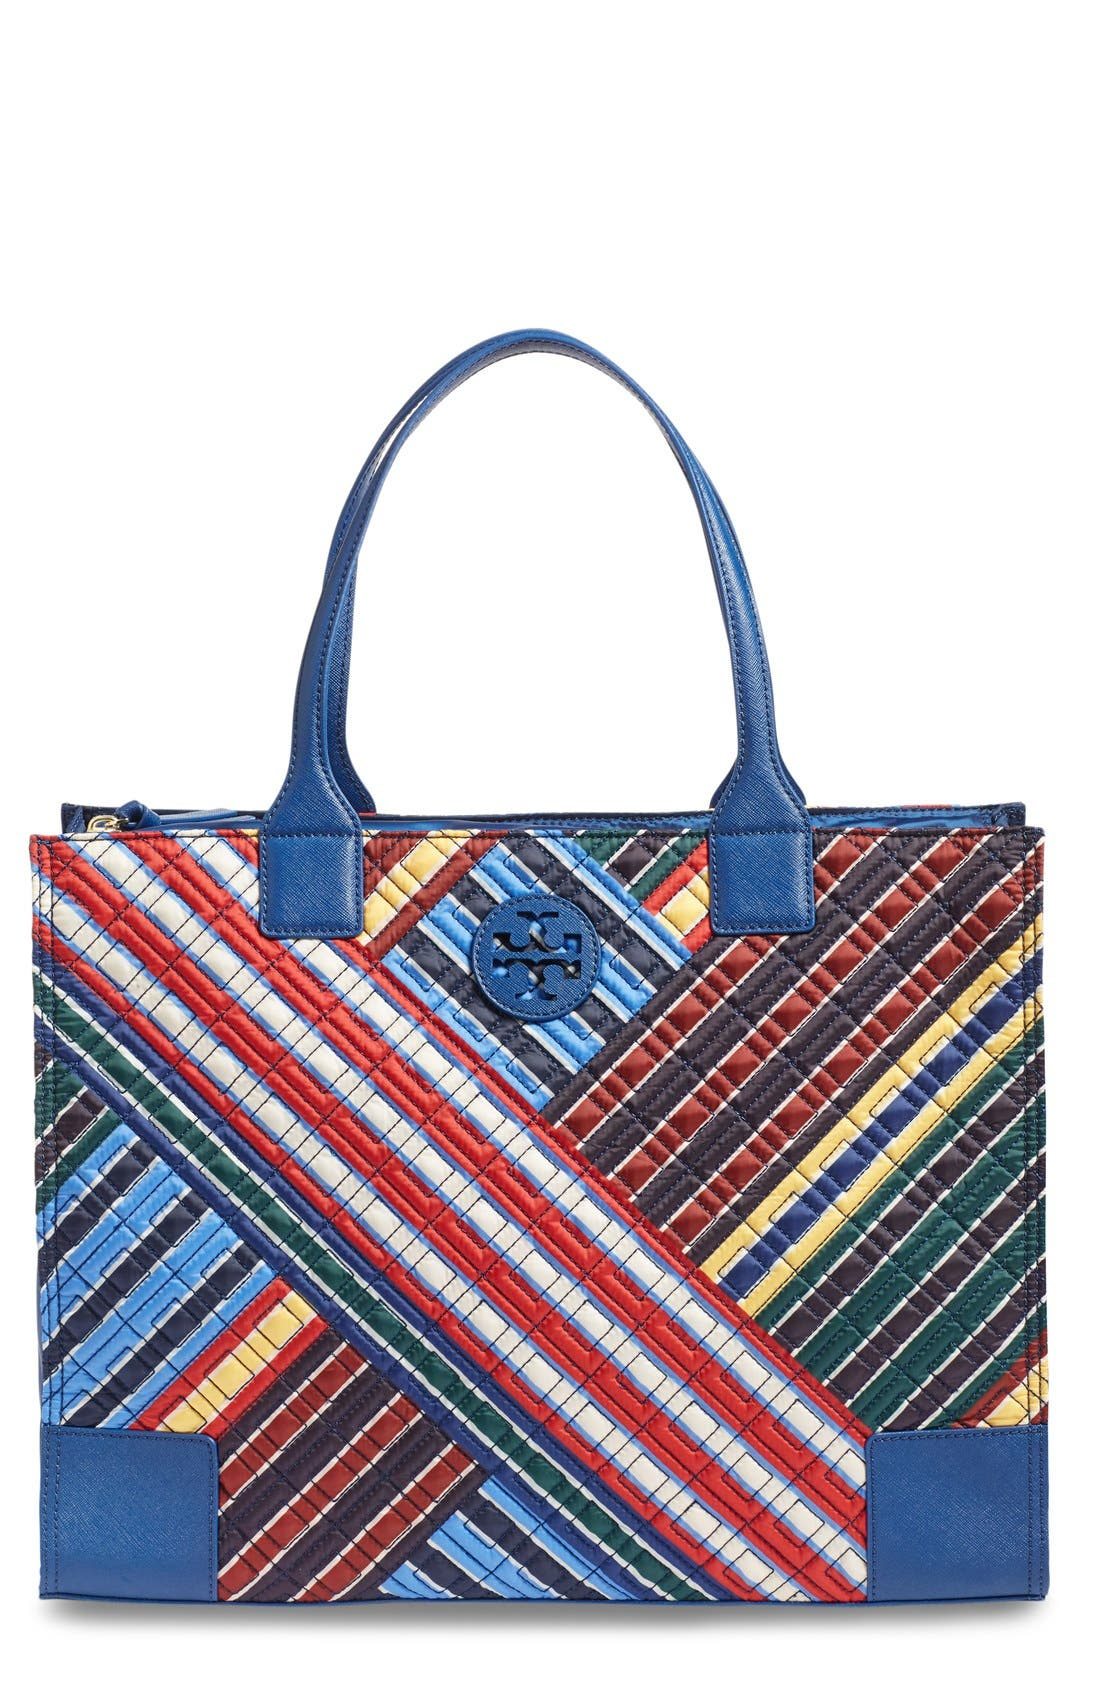 Alternate Image 1 Selected - Tory Burch 'Ella - Quilted Stripe' Tote